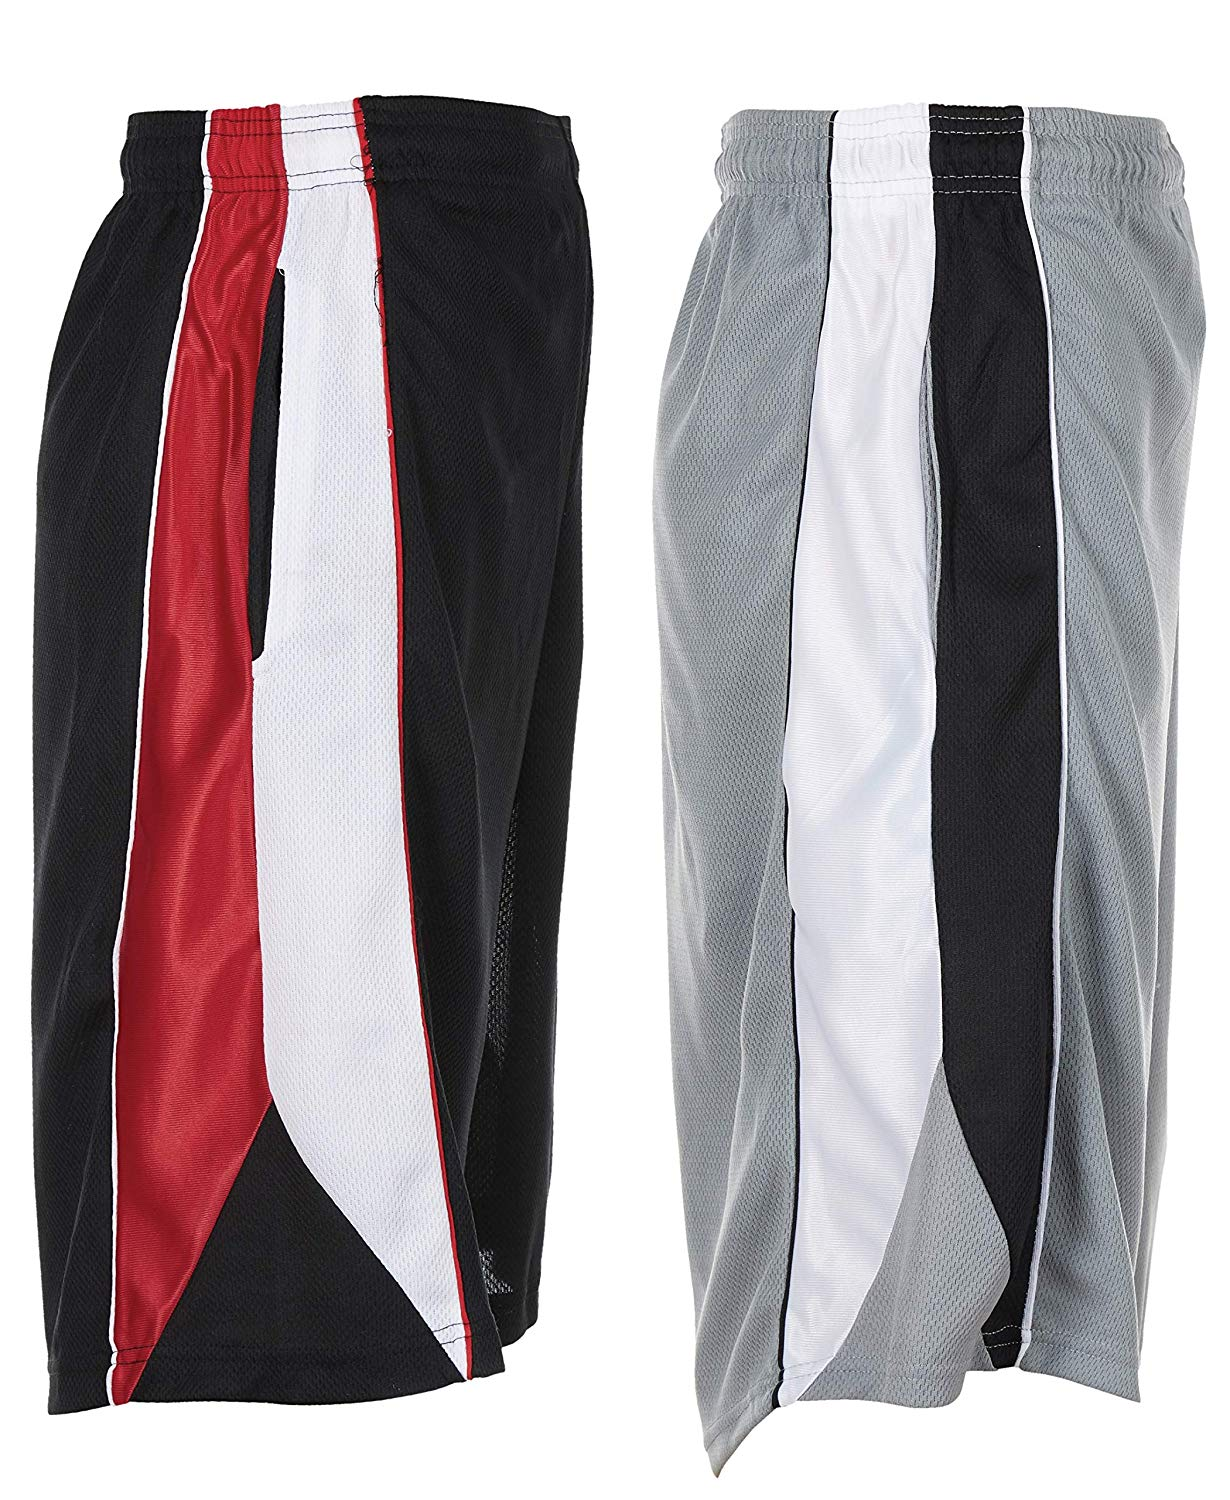 Unique Style 2 Pack Mens Athletic Basketball Long Shorts for Men with Pockets